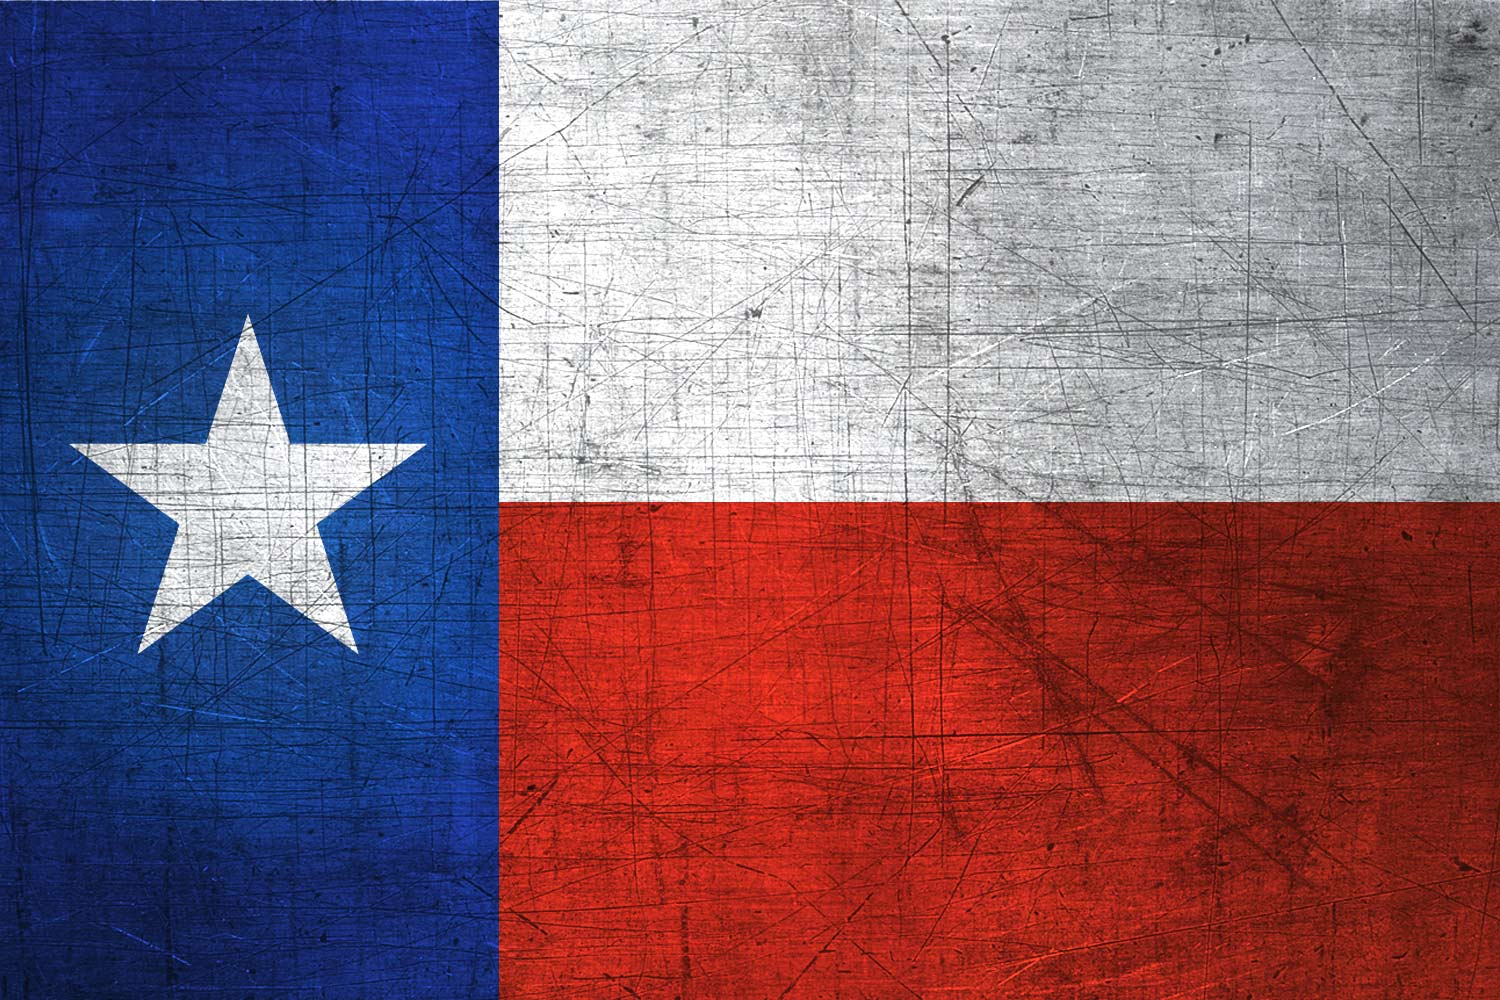 Texan Flag Metal (Flag of Texas) - Download it for free